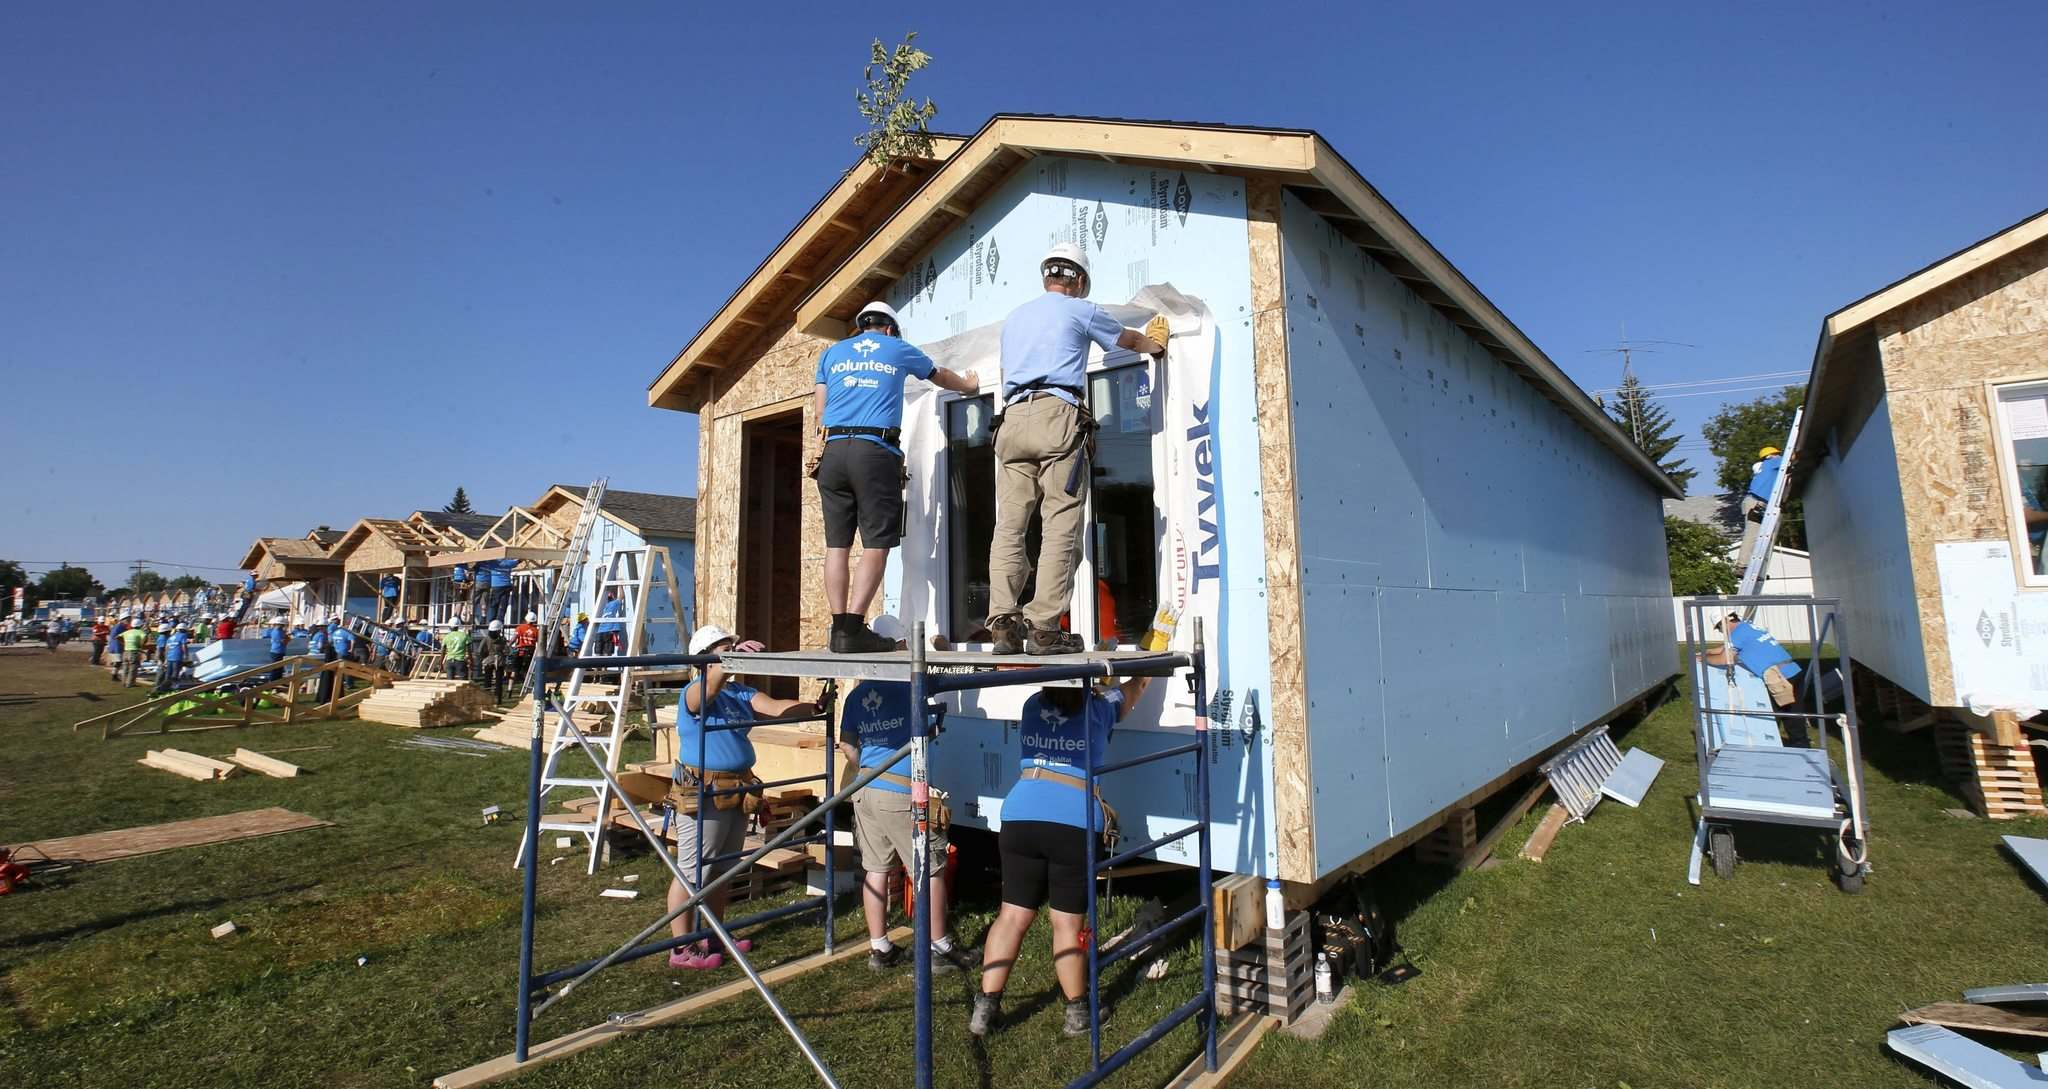 WAYNE GLOWACKI / WINNIPEG FREE PRESS</p><p>Volunteers were back at it Friday morning finishing up homes on Lyle St. for the Habitat for Humanity&rsquo;s 34th Jimmy &amp; Rosalynn Carter Work Project.</p>